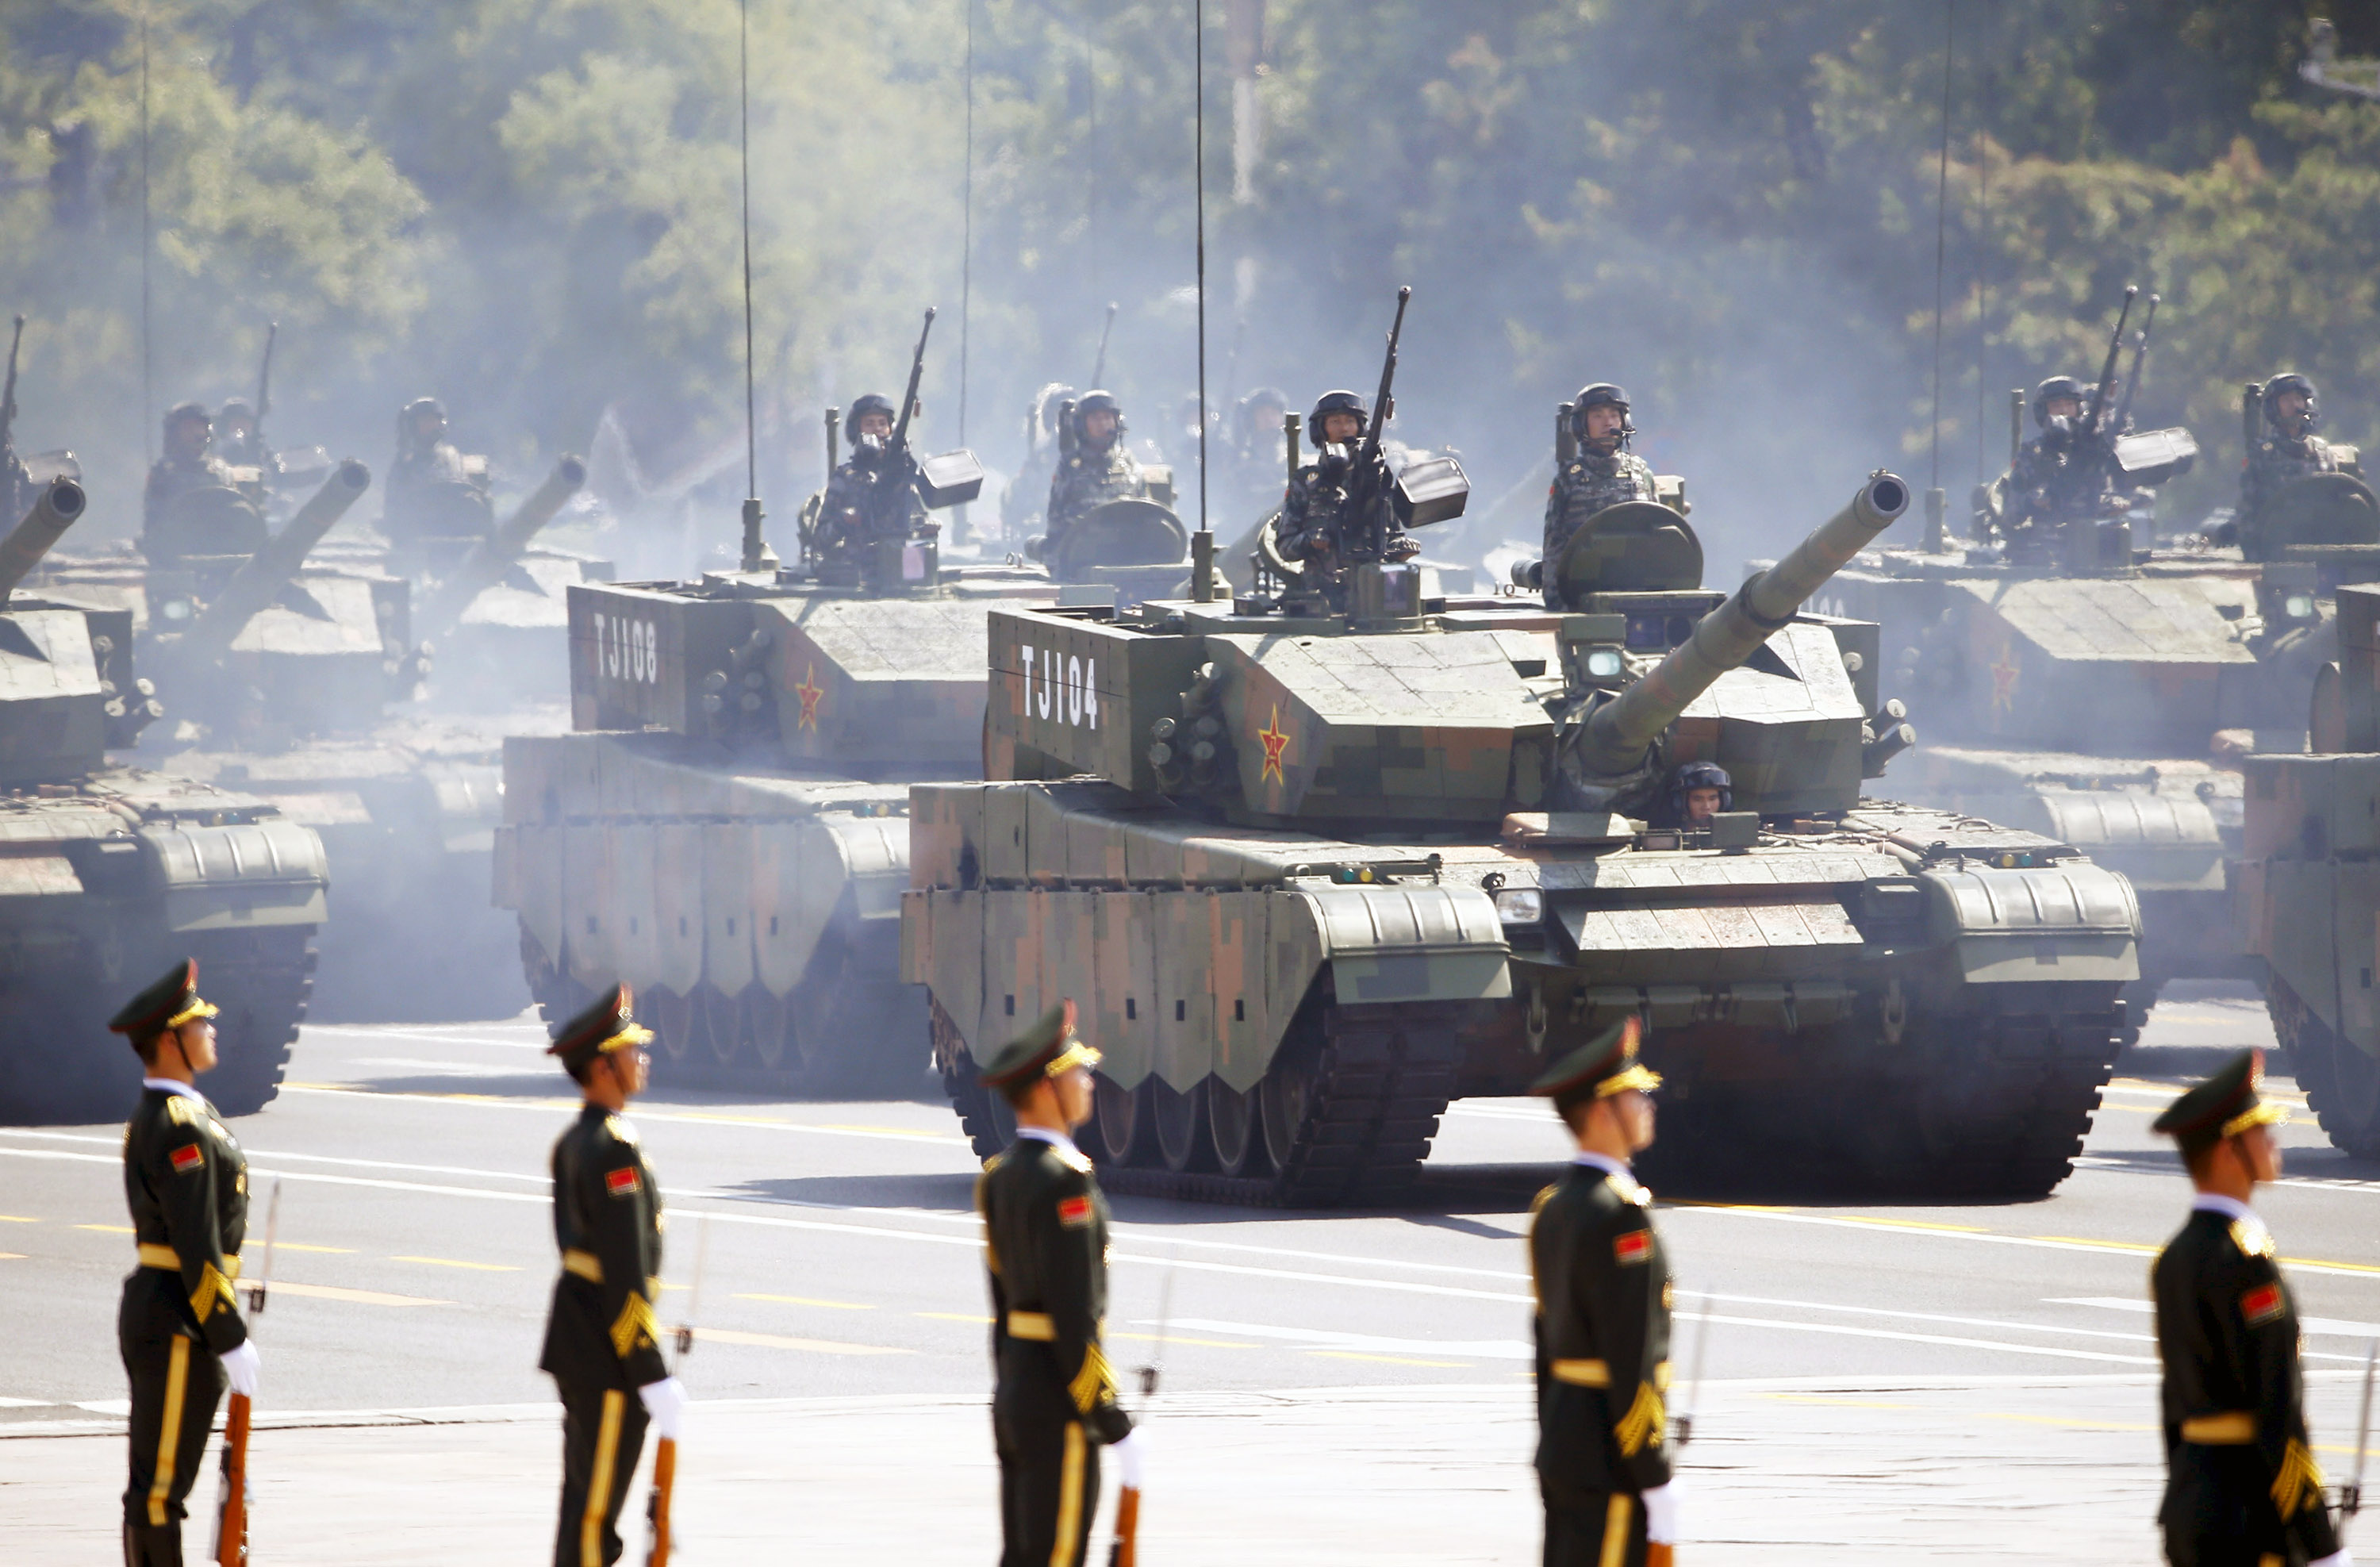 This War Turned China Into A Military Superpower